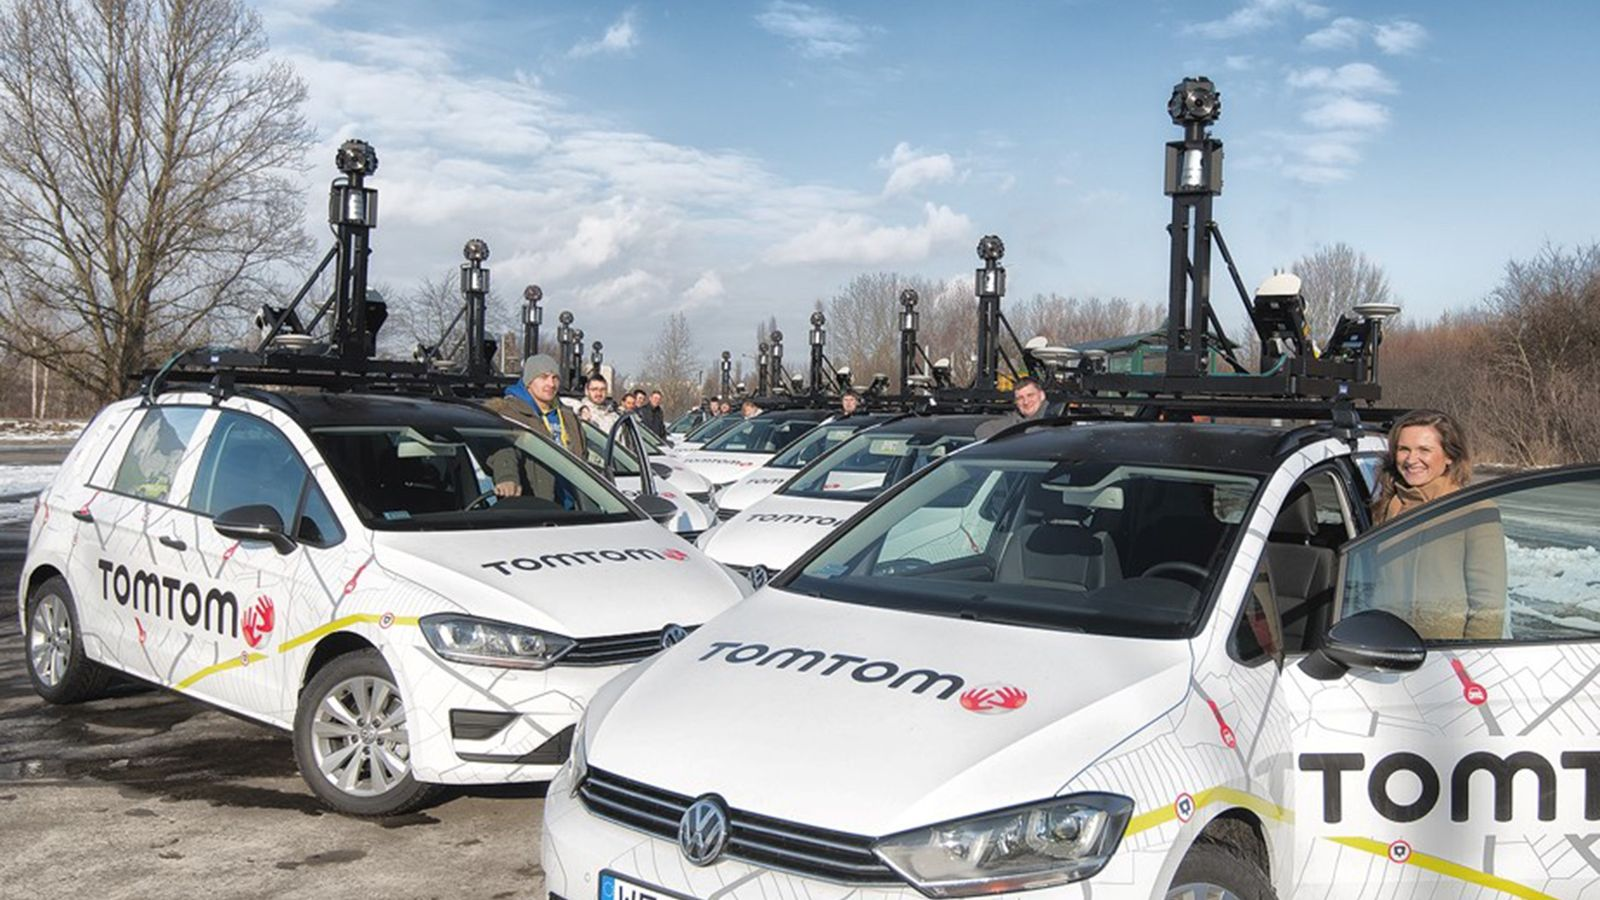 TomTom Strengthens Self-driving Expertise with Autonomous Acquisition